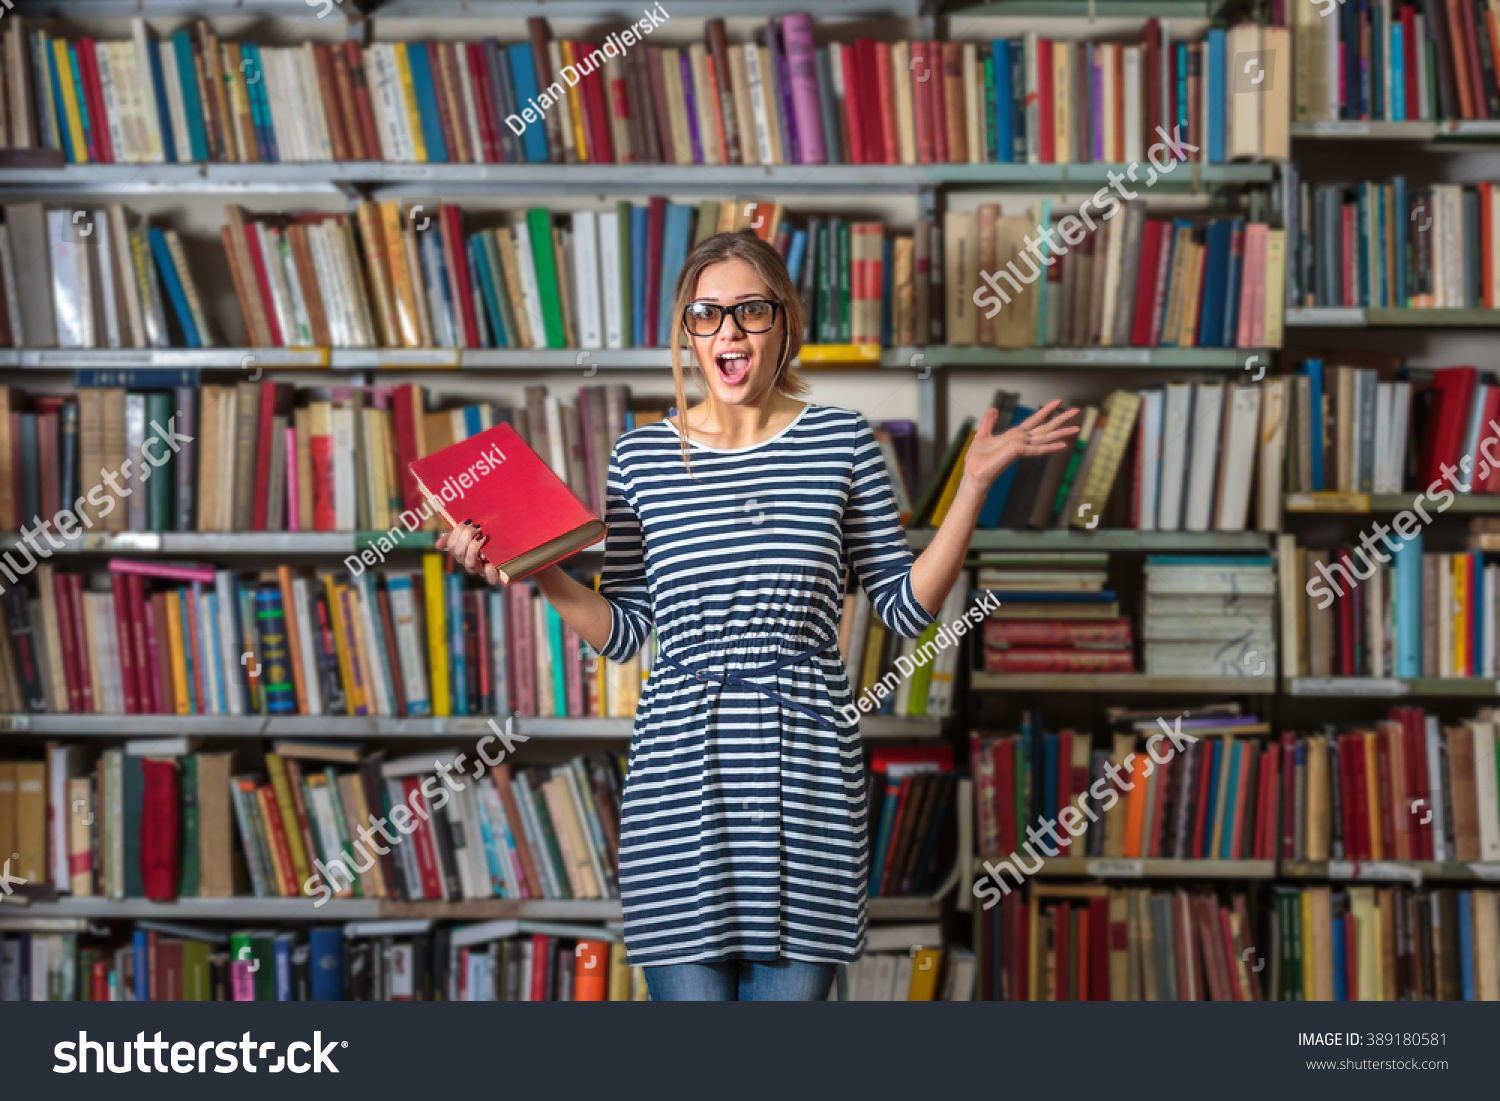 College Student Standing In Front Of Bookshelf